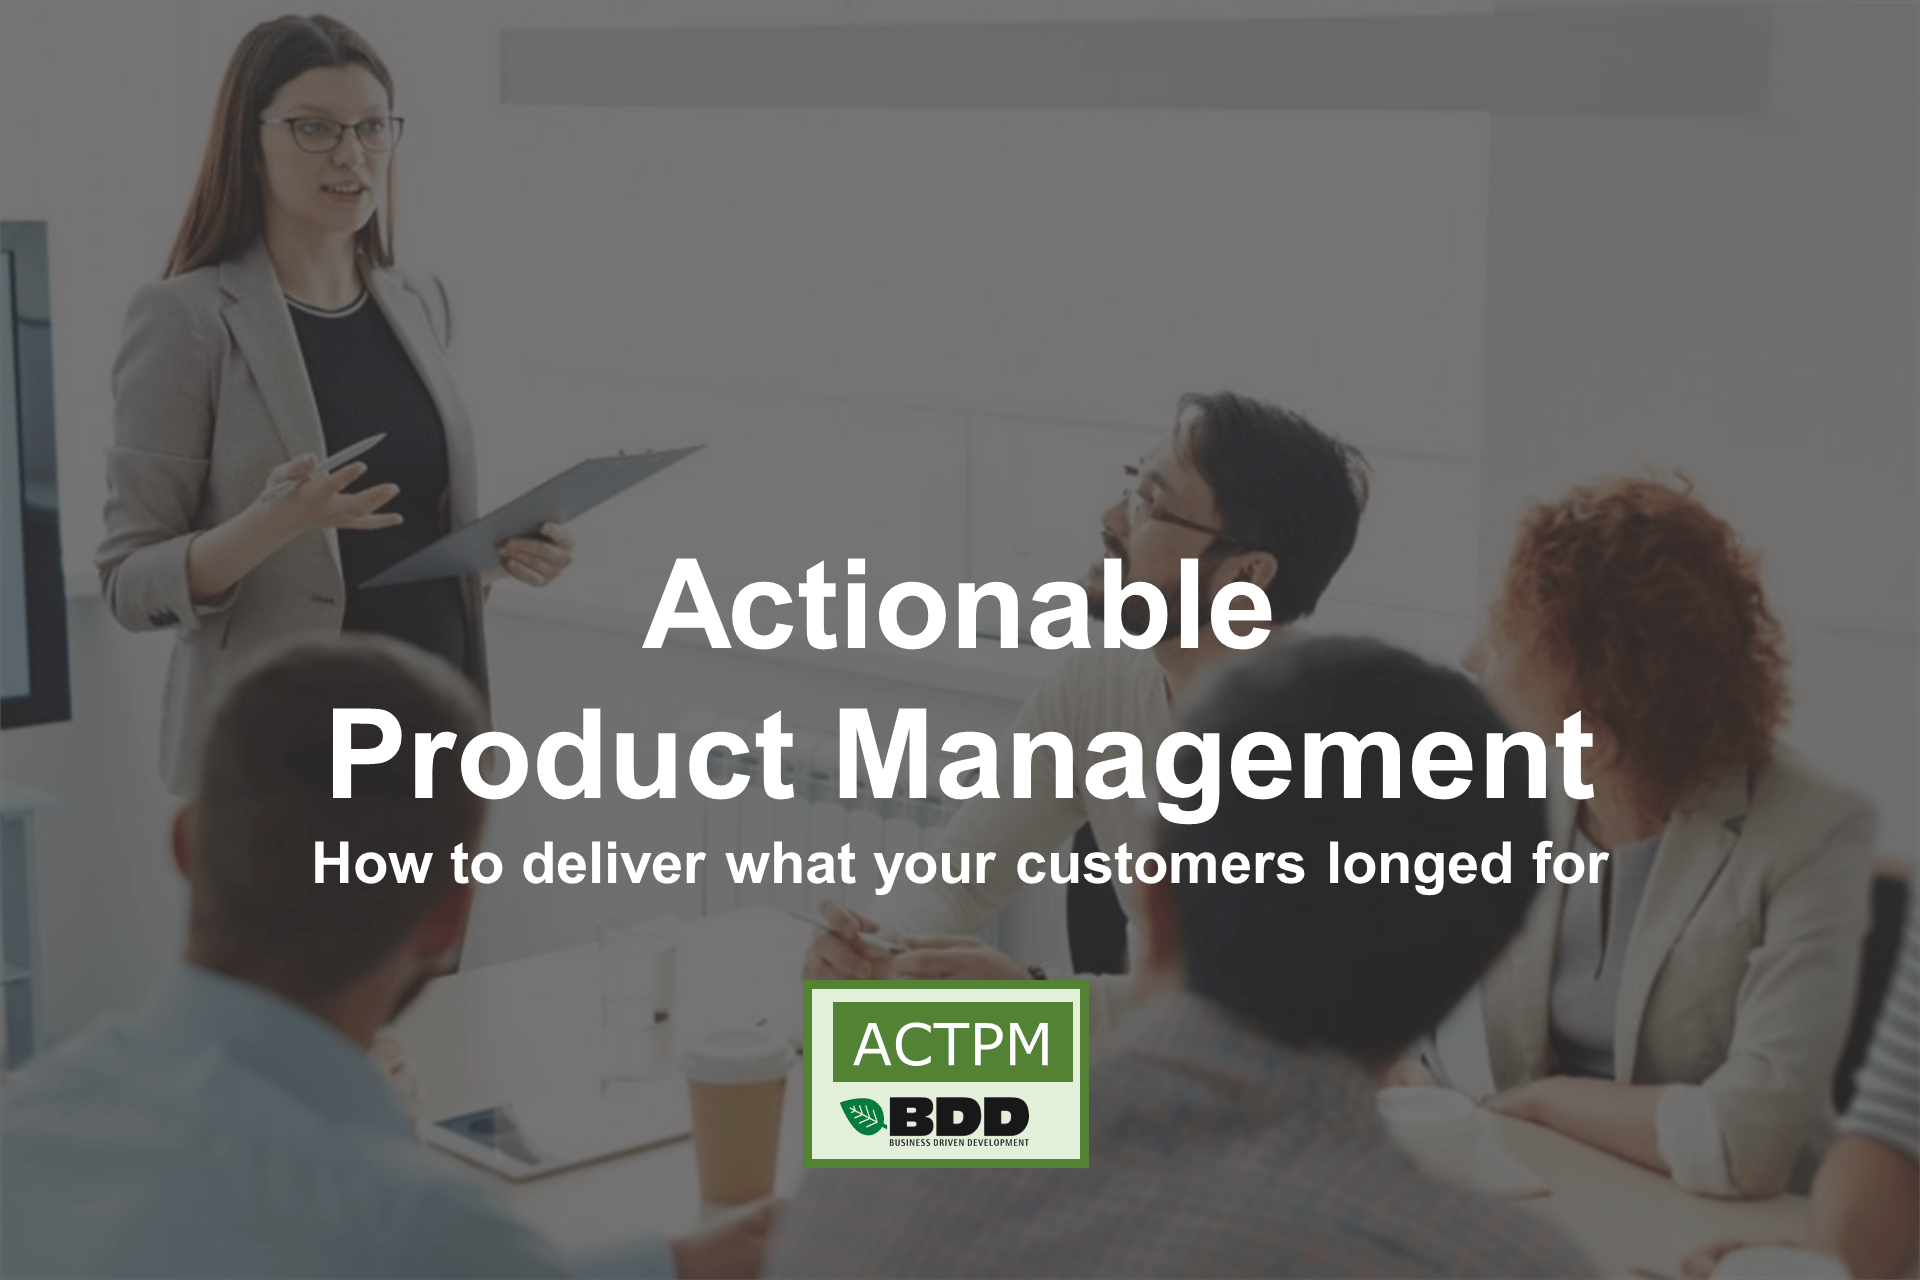 Actionable Product Management